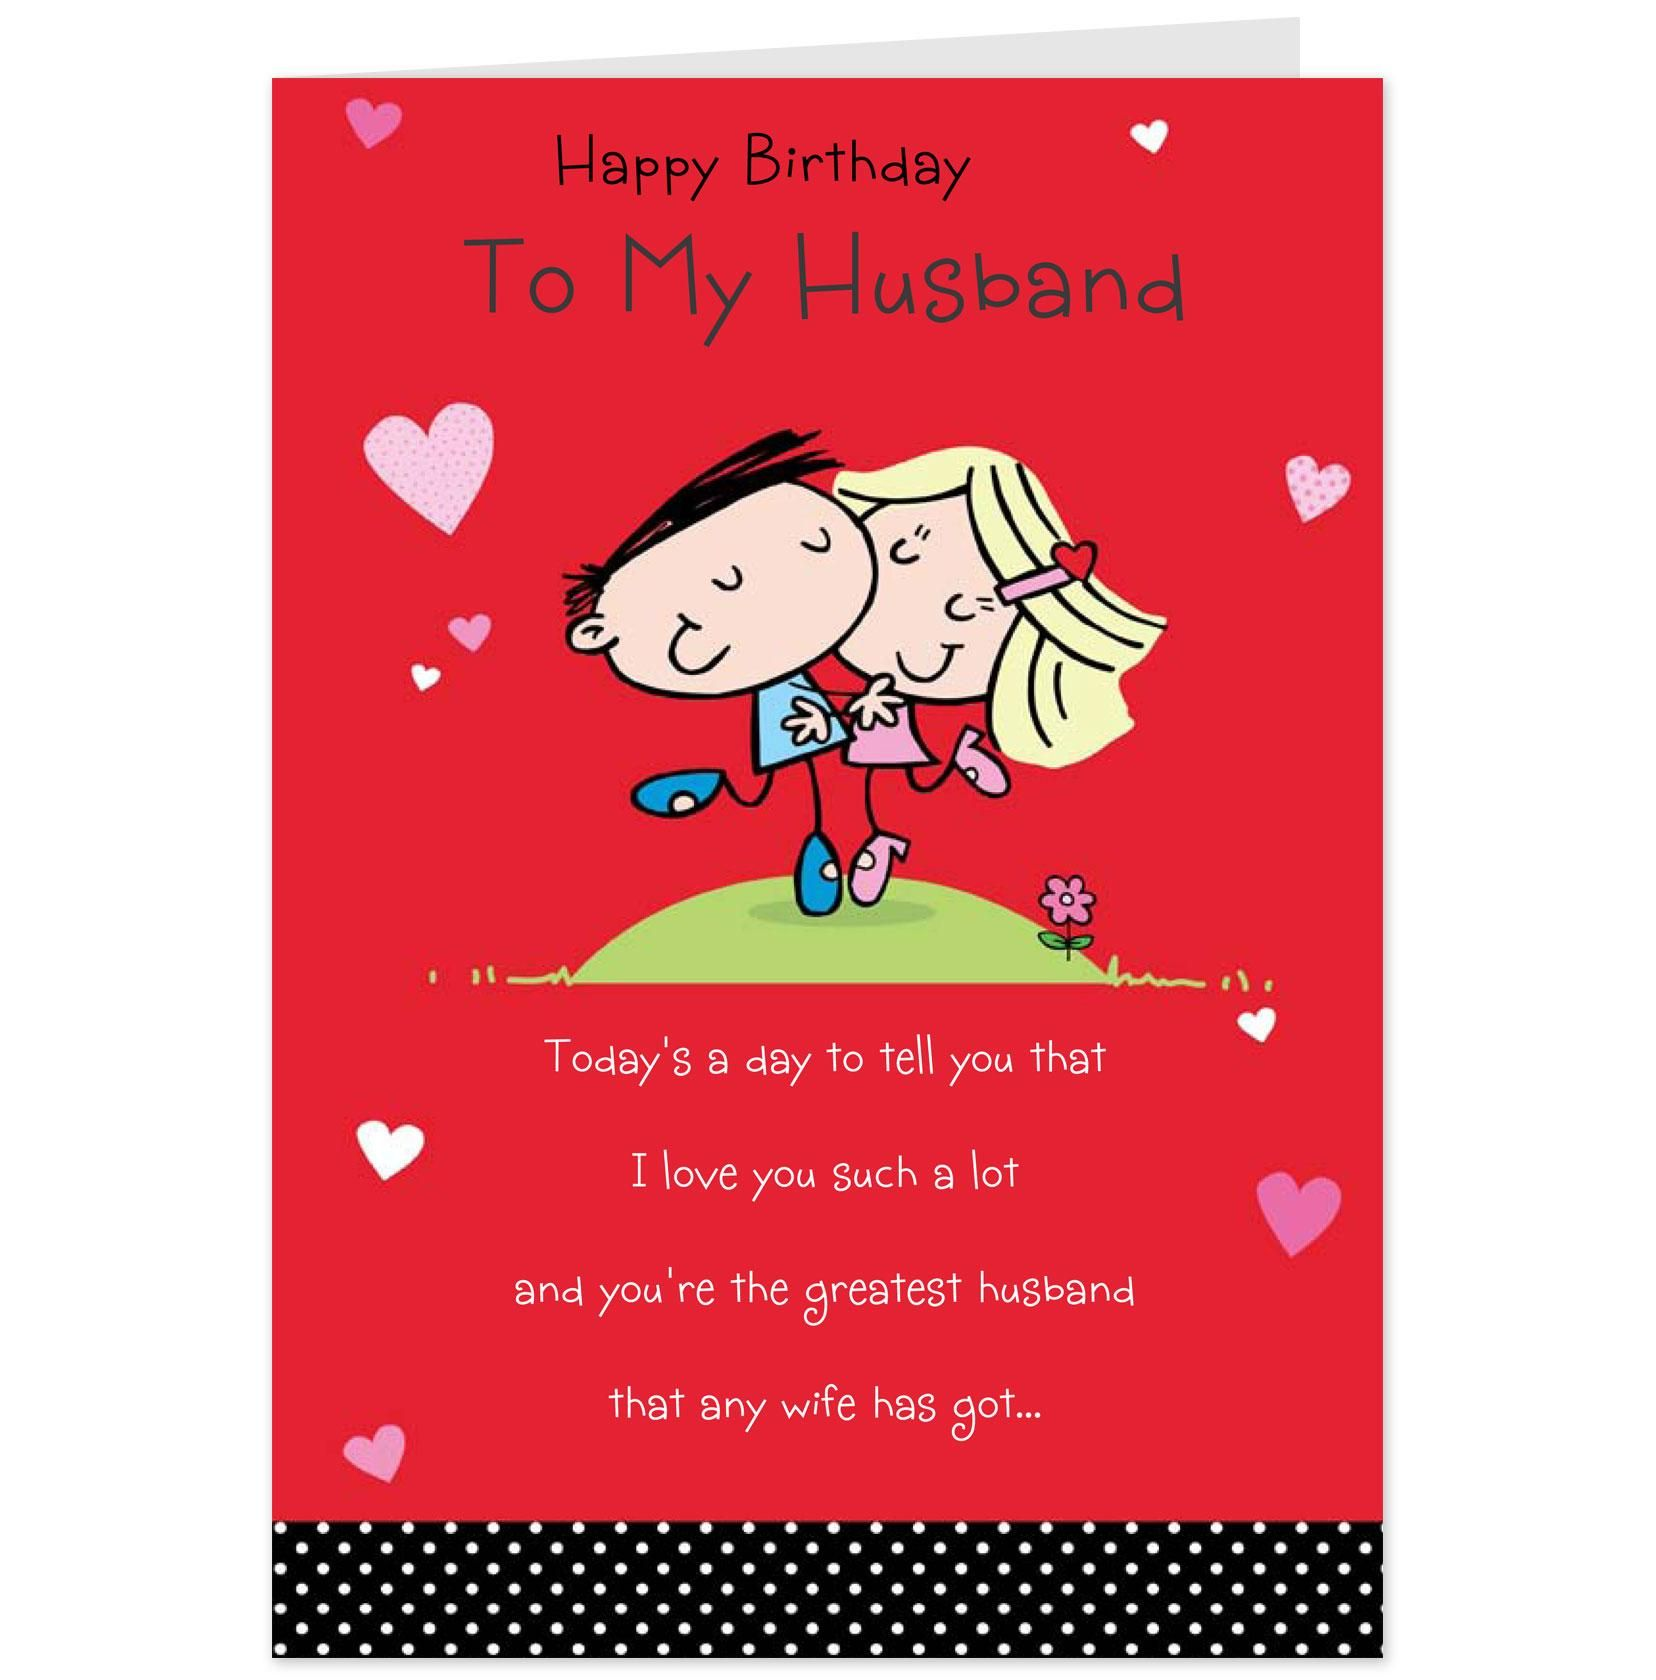 Birthday Invitations Card Romantic Birthday Wishes To Husband For Greeting With Love Sentiments